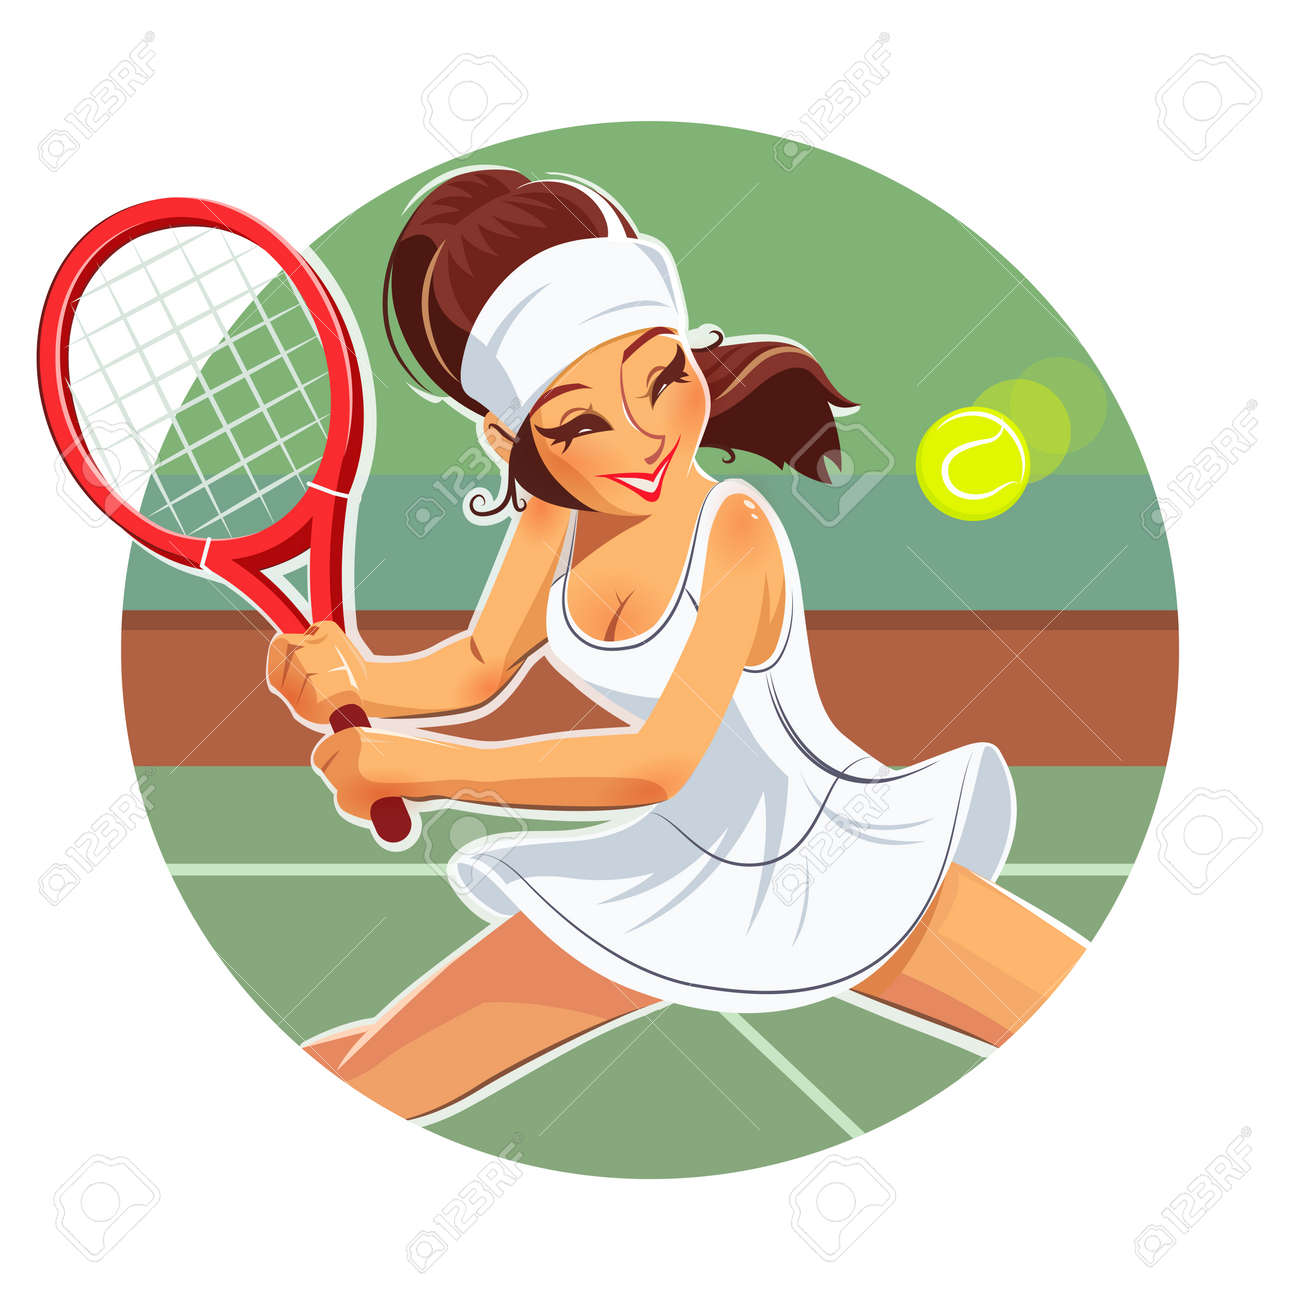 hight resolution of beautiful girl play tennis eps10 vector illustration isolated on white background stock vector